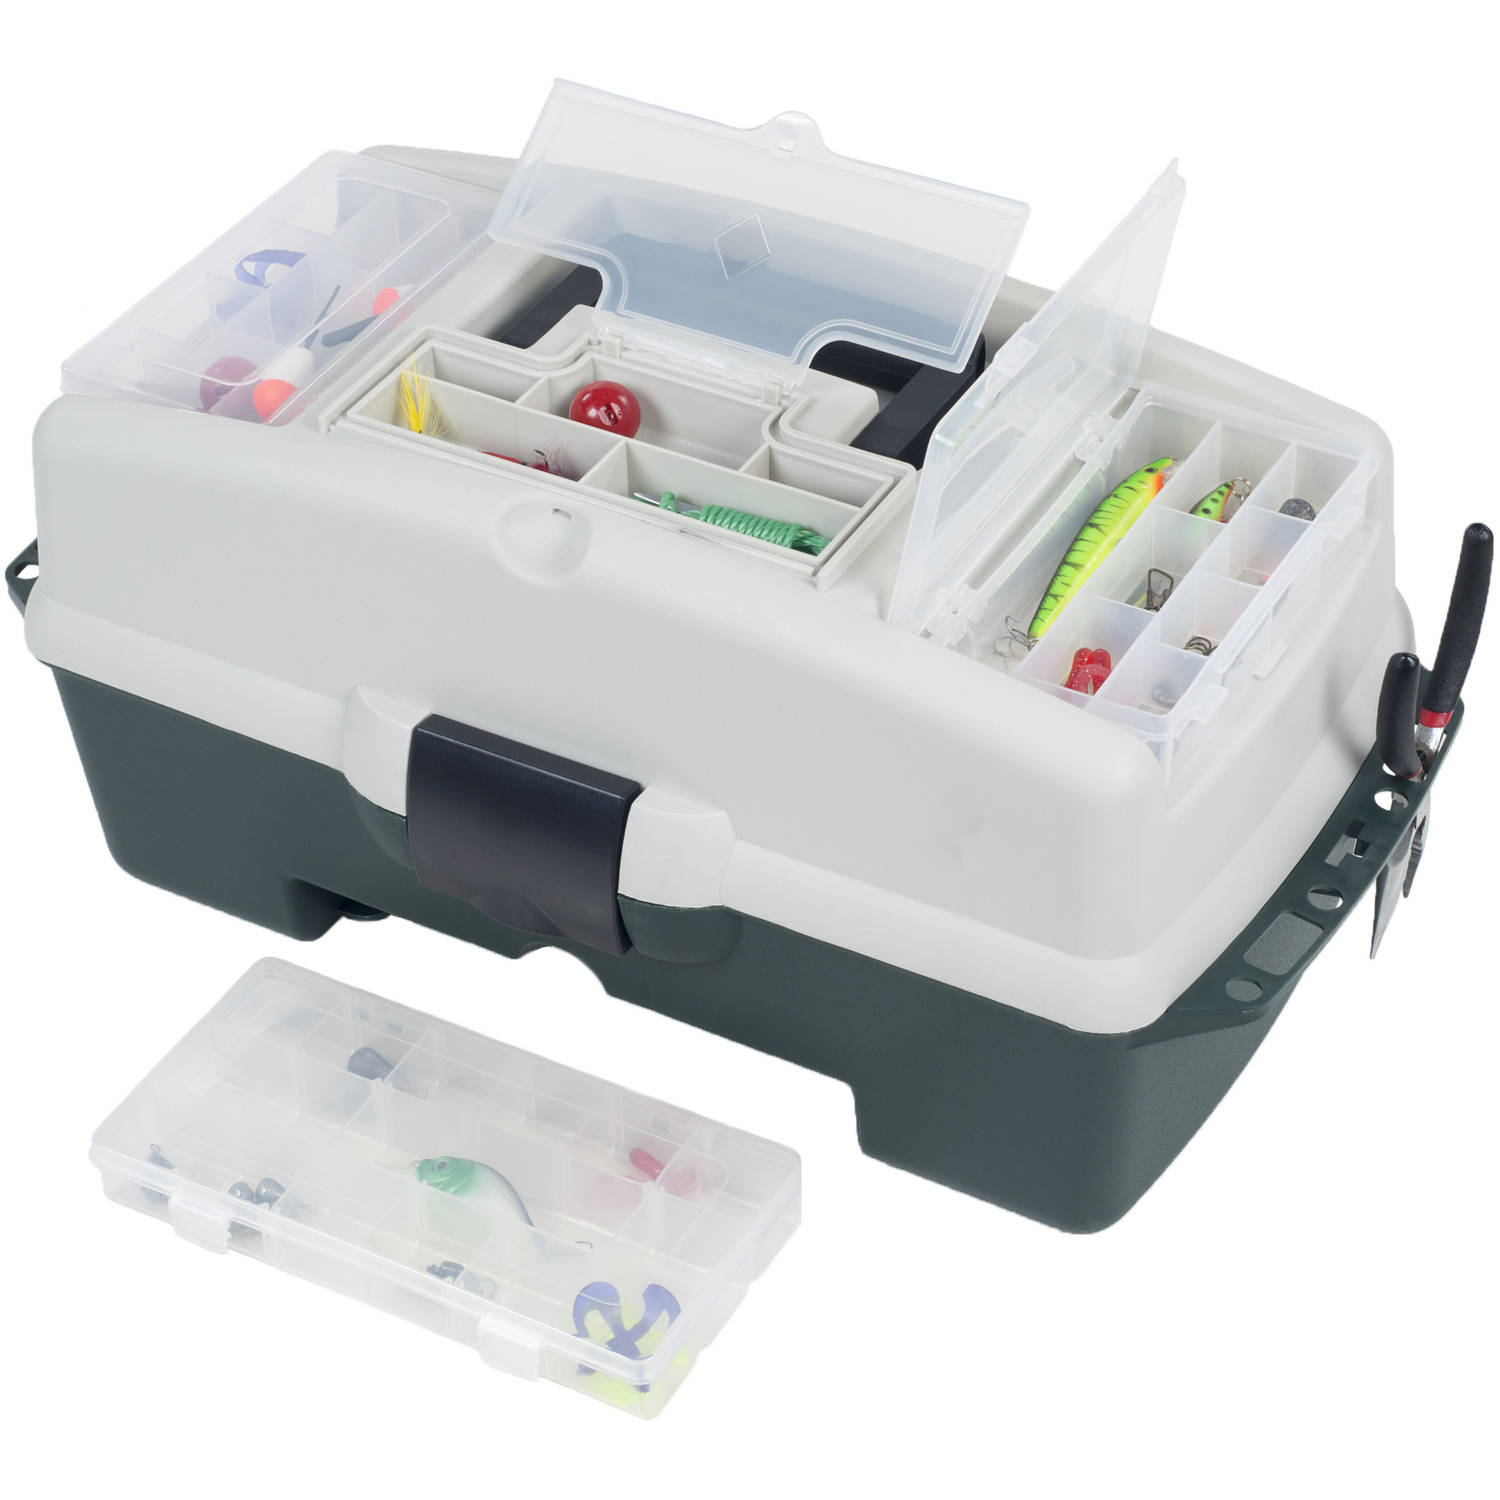 "Wakeman Fishing 2-Tray Tackle Box with 3 Removable Organizers, 18"" by Trademark Global LLC"